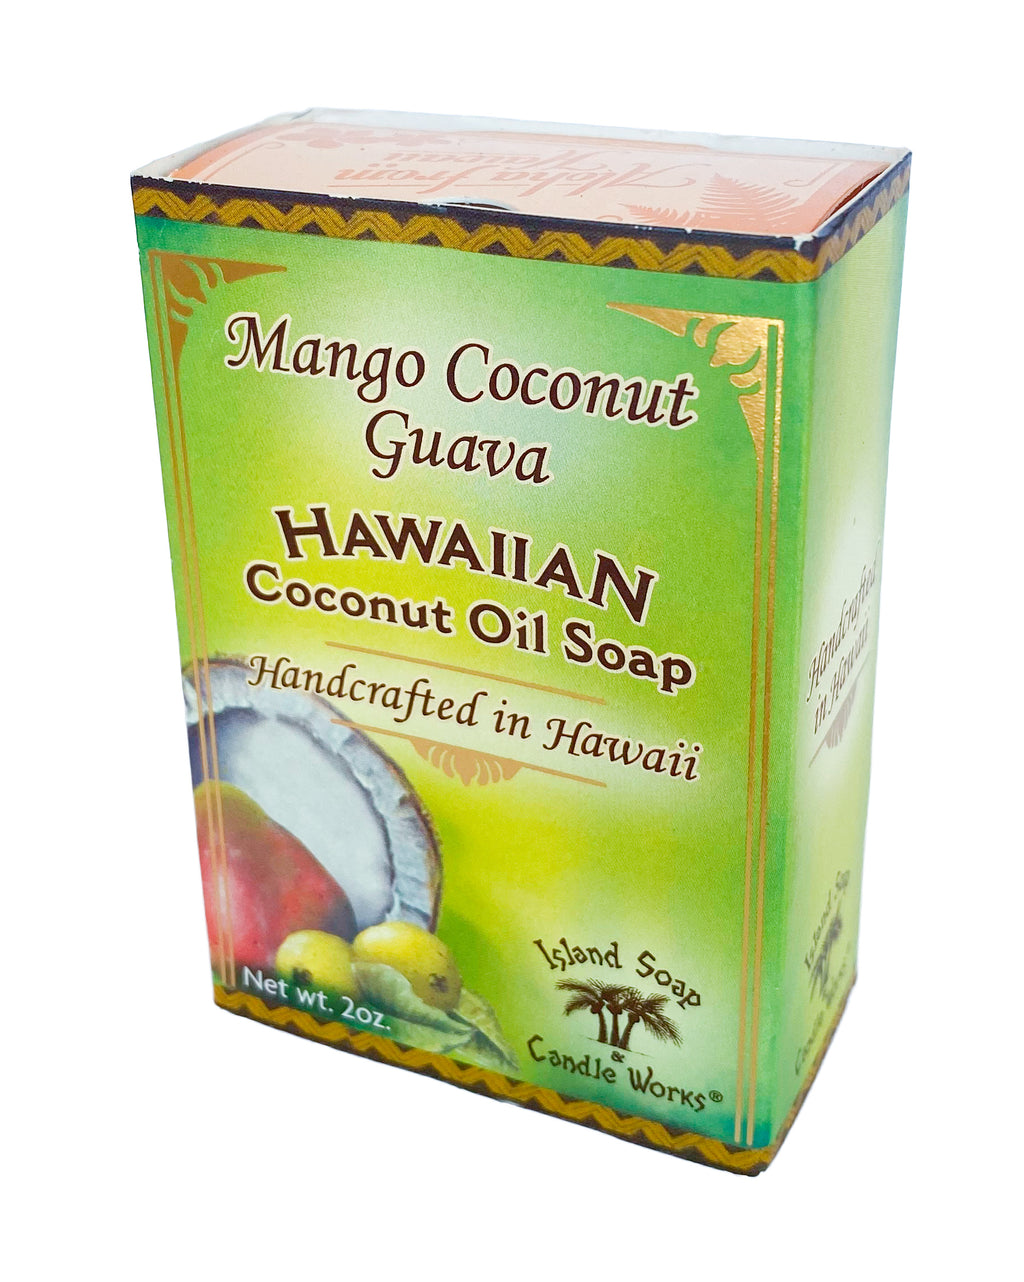 Mango Coconut Guava - 2 oz. Coconut and Palm Oil Soap